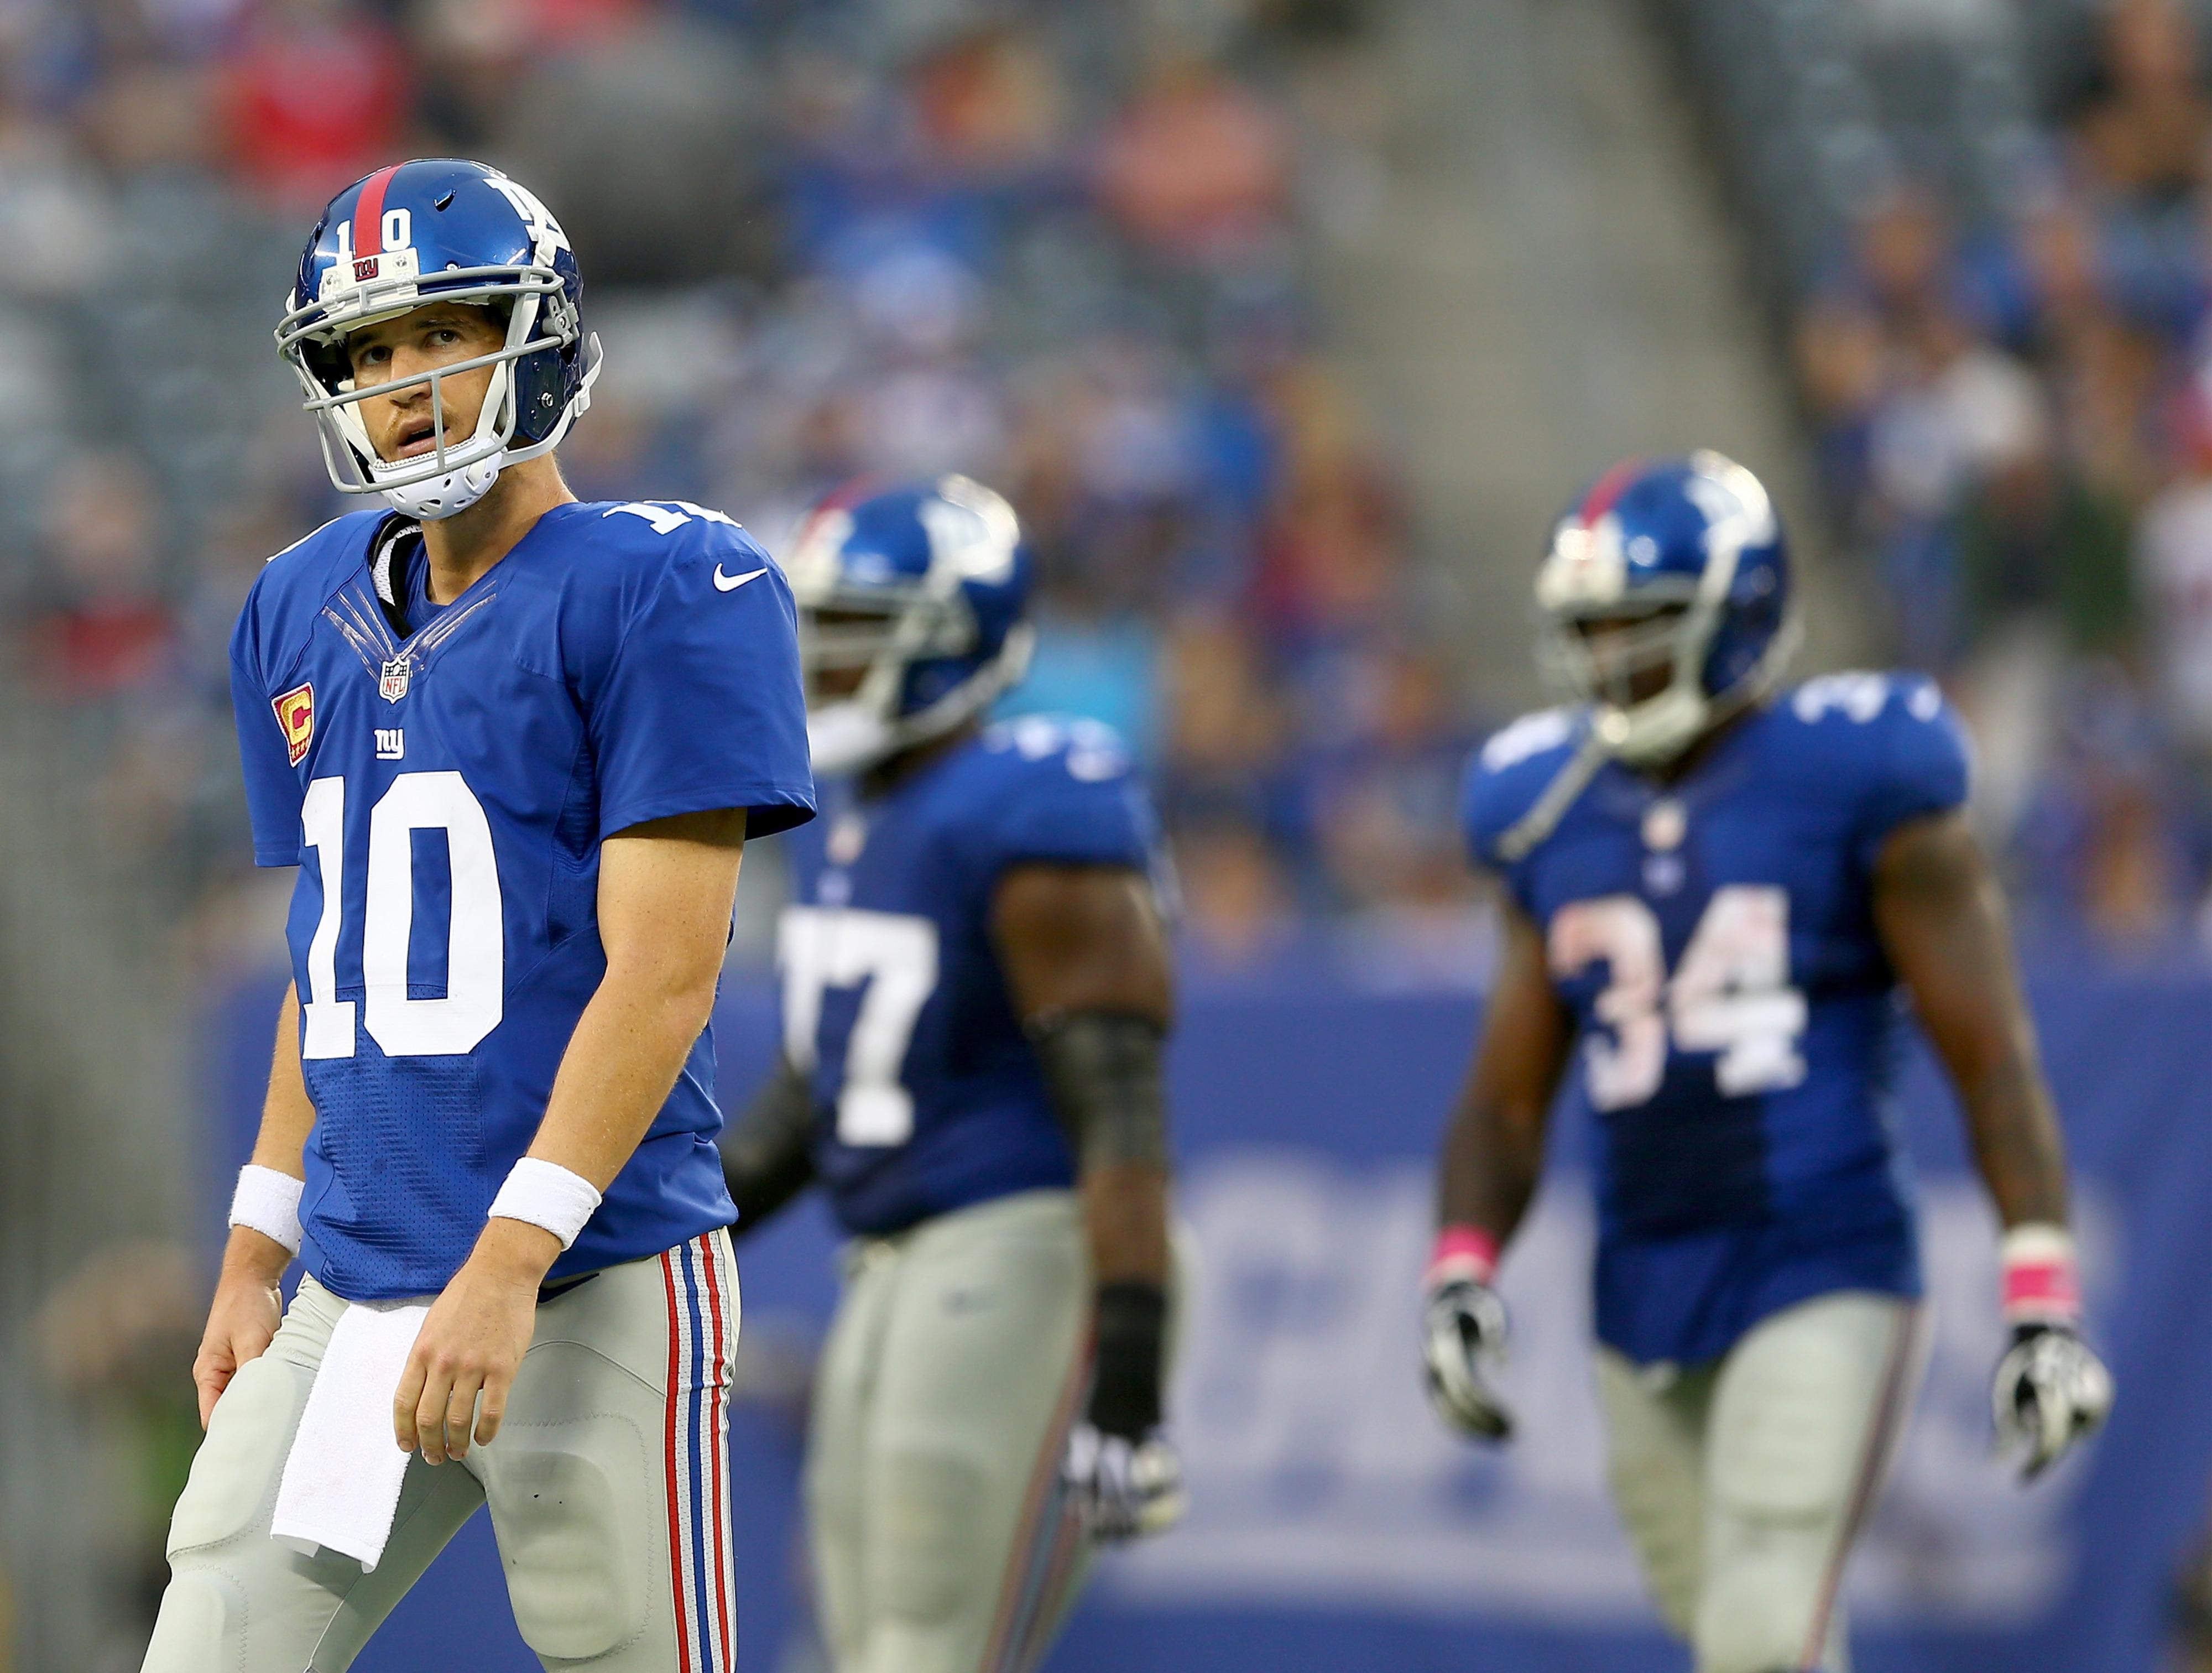 Eli Manning walks off the field after throwing one of his three fourth-quarter interceptions on Sunday.